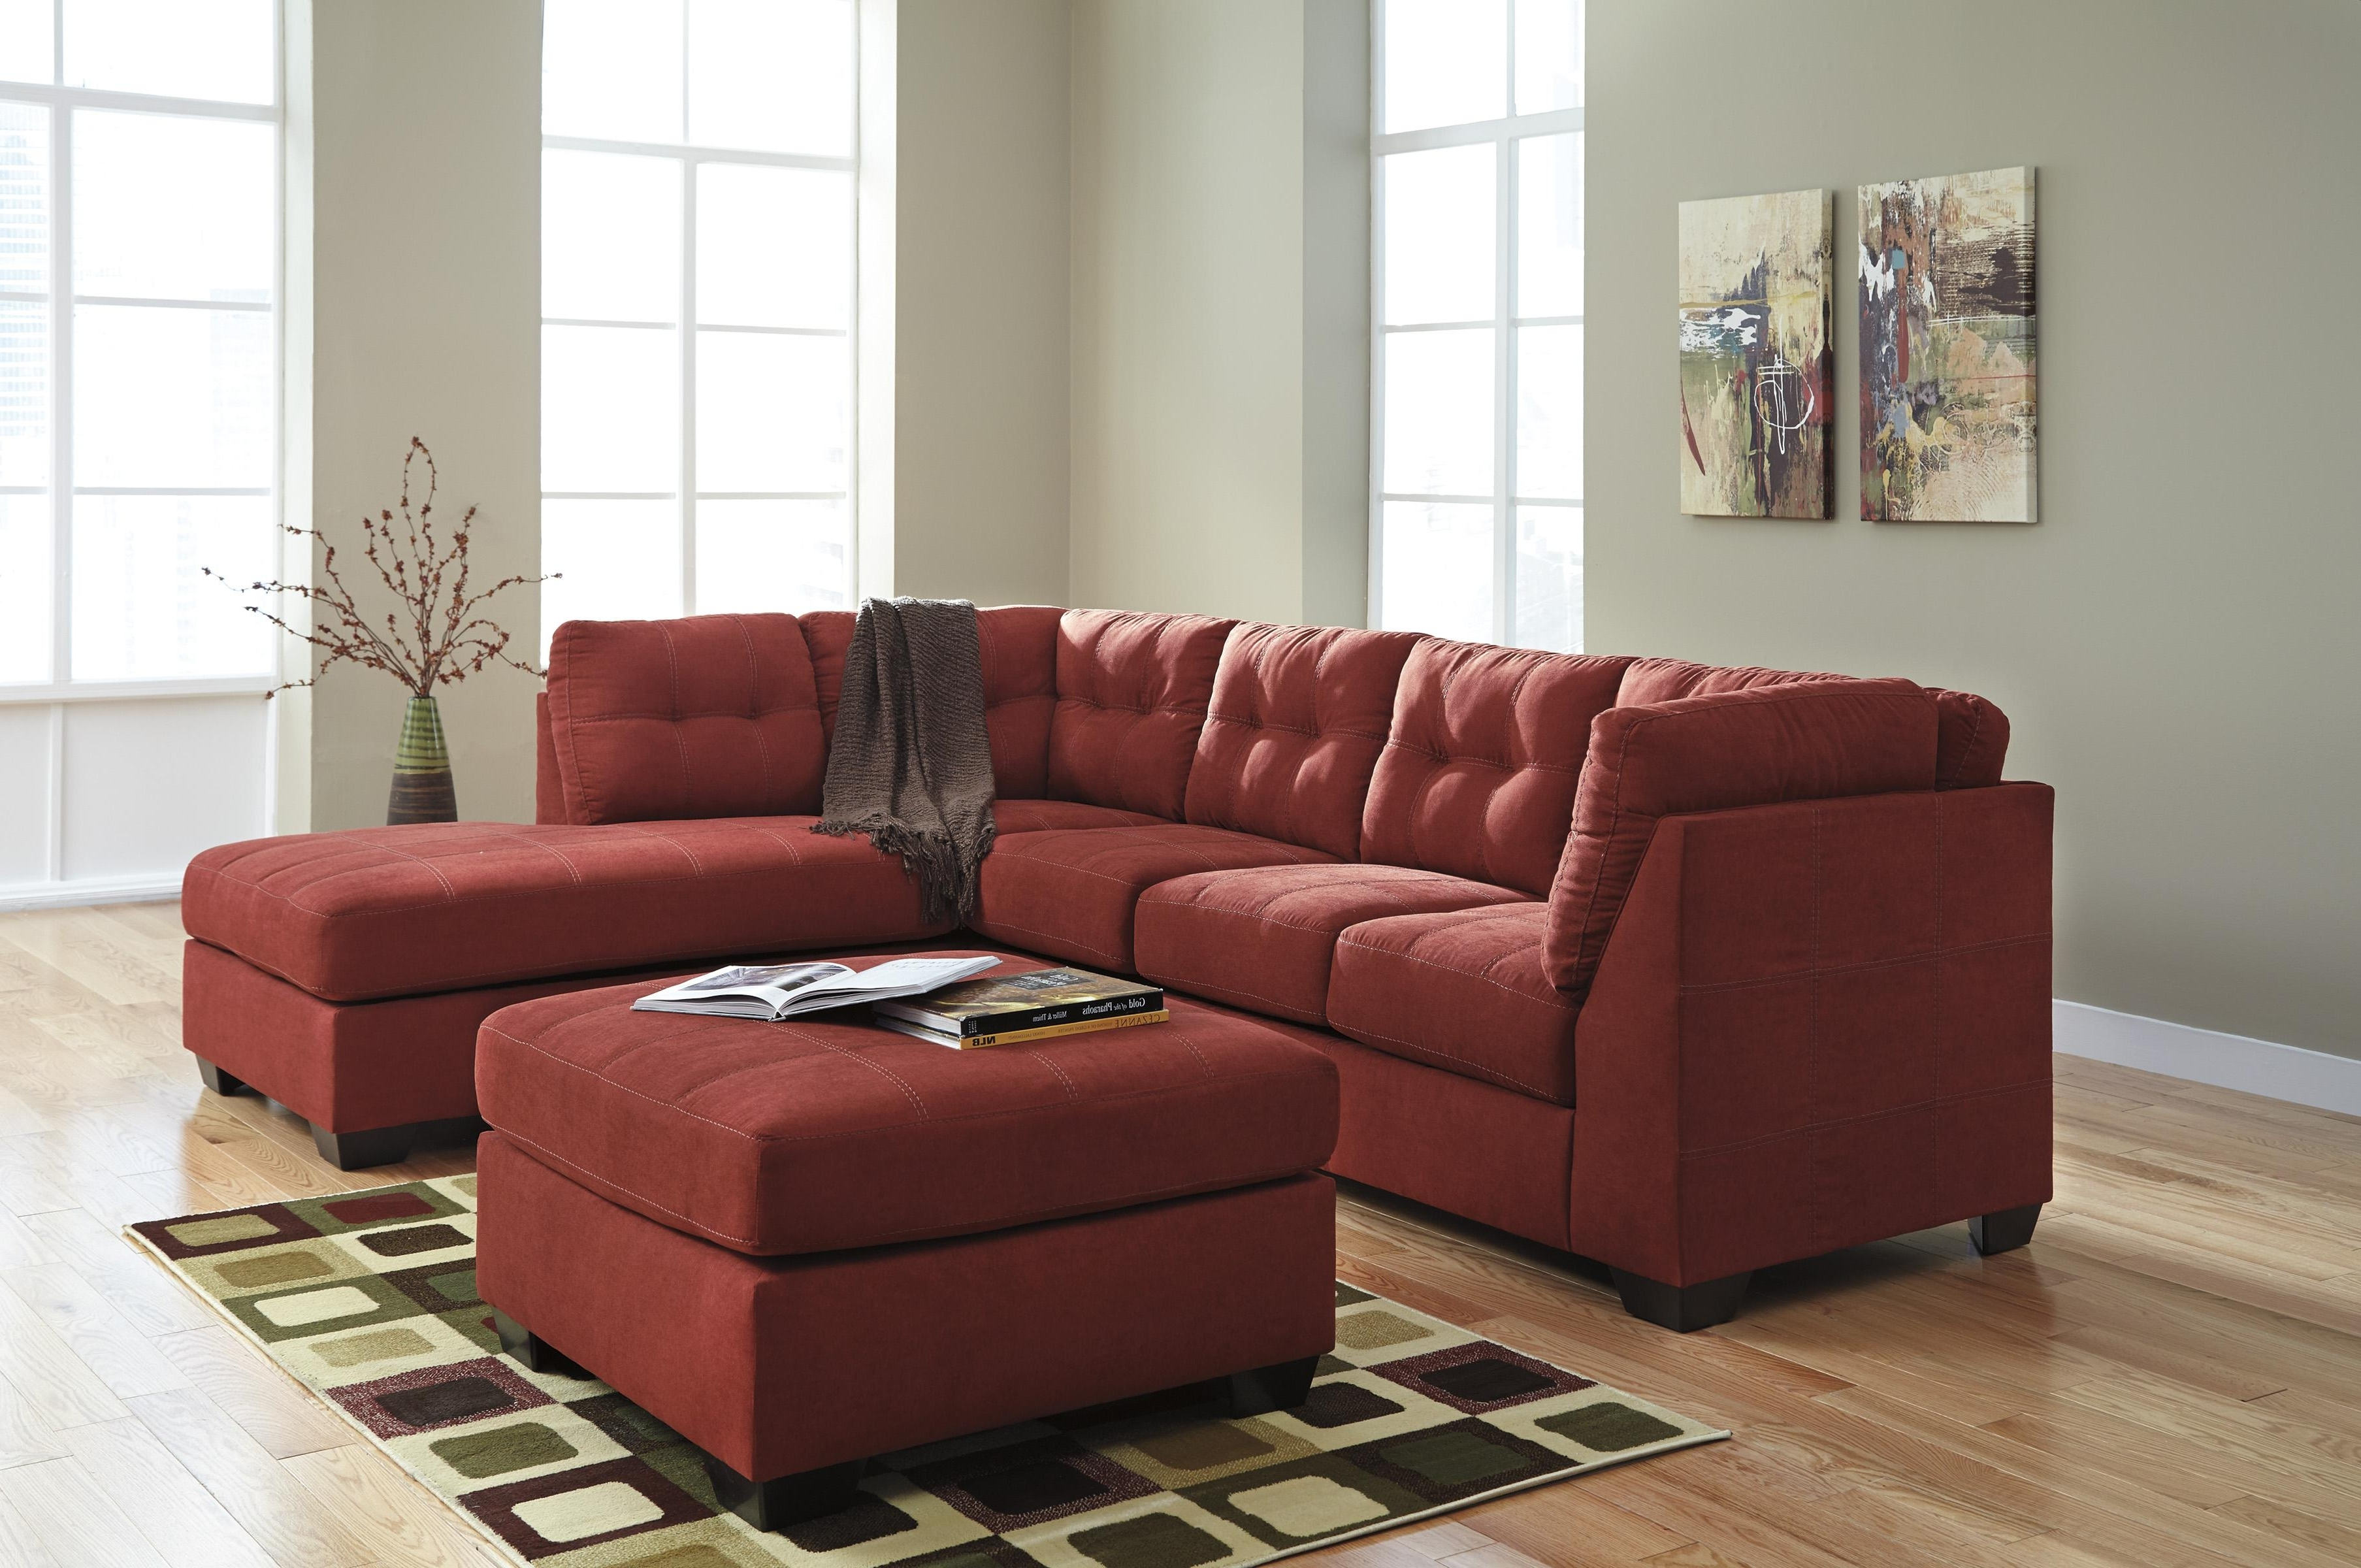 Newest Sectional Sofas With 2 Chaises Pertaining To Benchcraft Maier – Sienna 2 Piece Sectional W/ Sleeper Sofa (View 8 of 15)